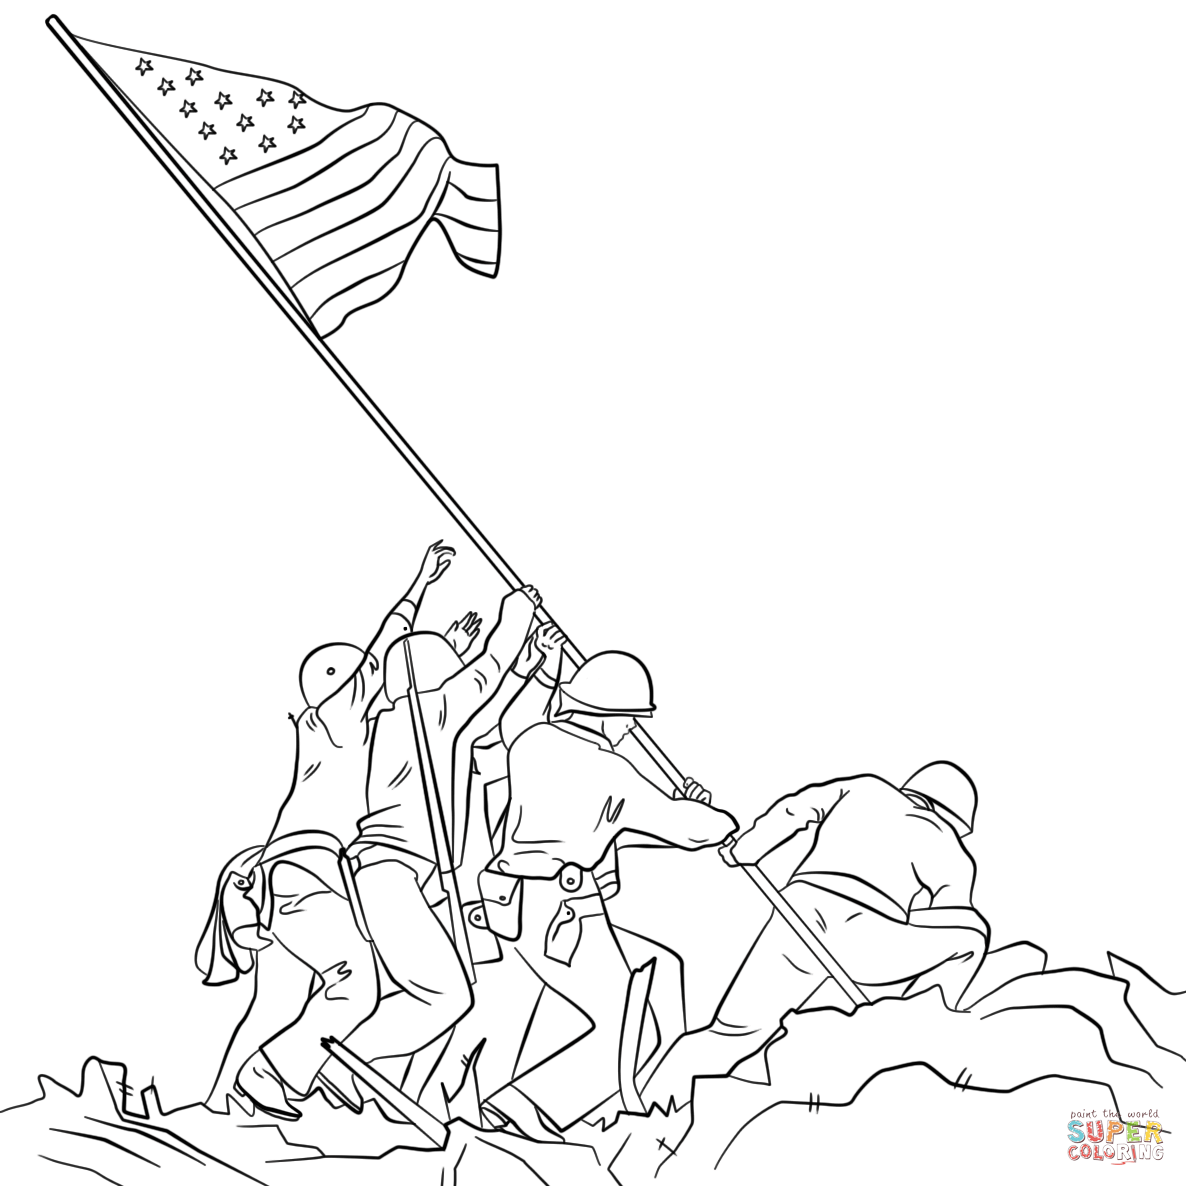 Raising The Flag On Iwo Jima Coloring Page